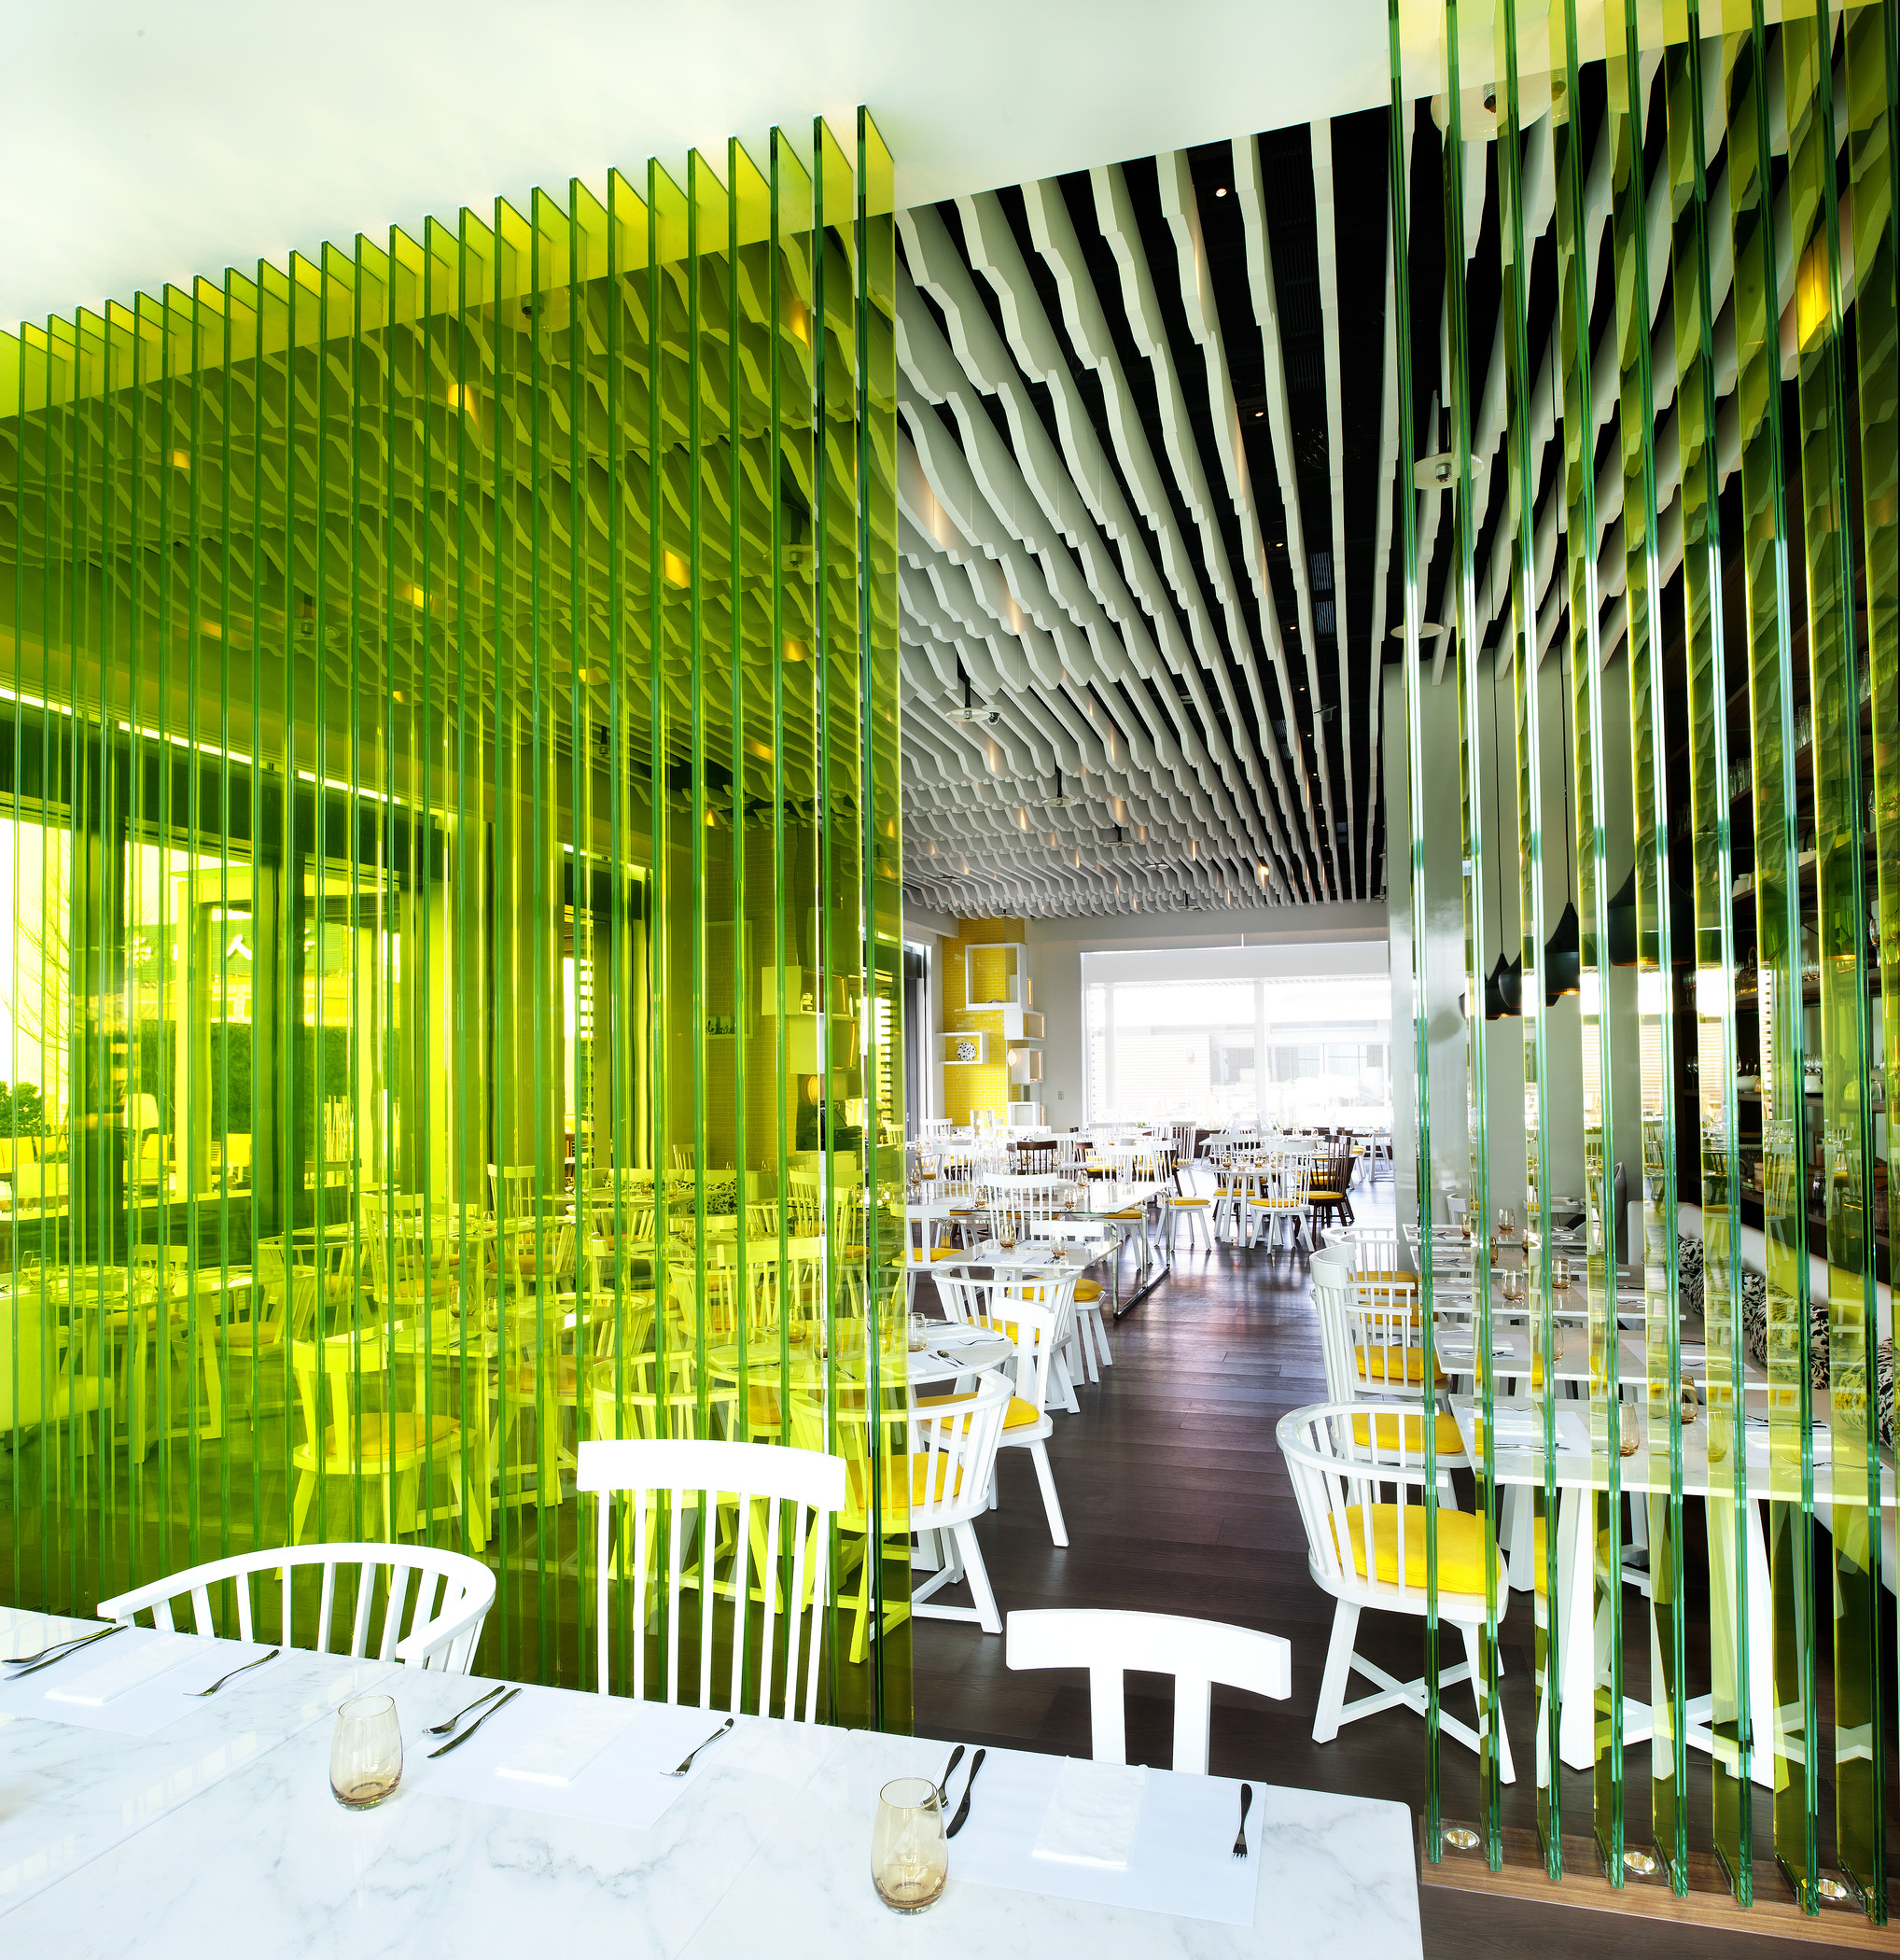 view id &pmc id &vt only 1 the kitchen table Restaurant The Kitchen Table